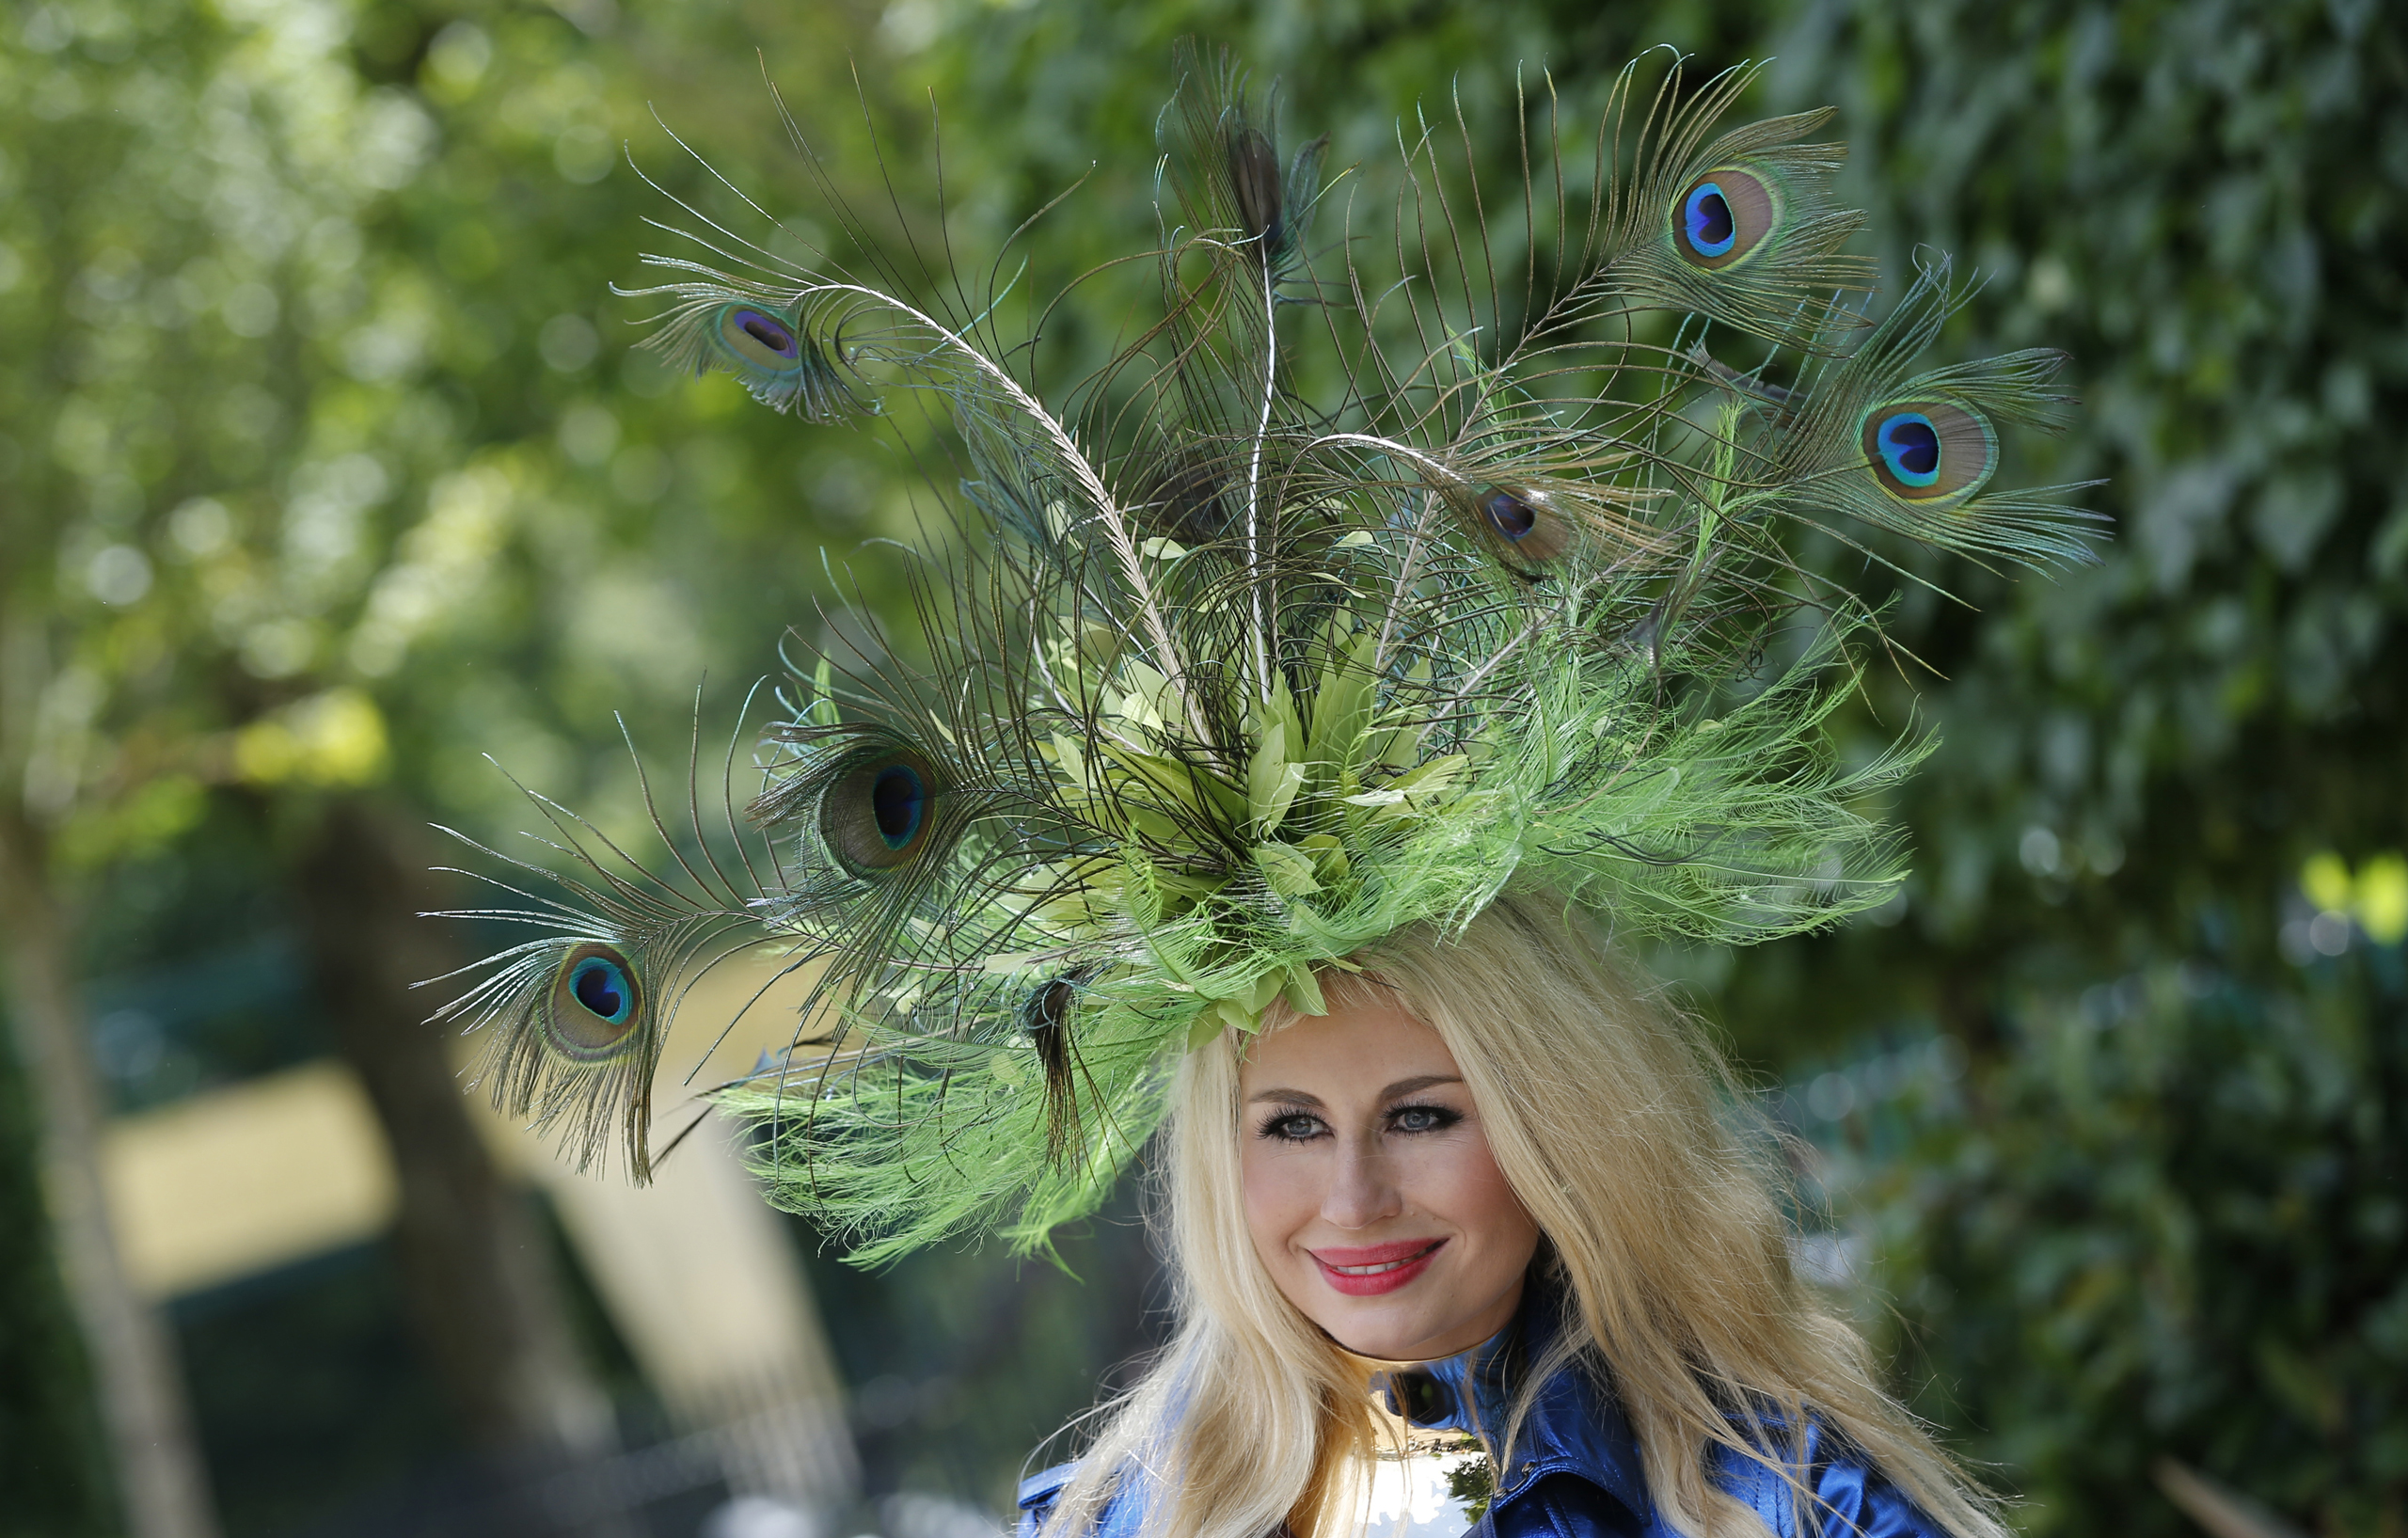 A woman wears an ornate hat made from peacock feathers on the second day of the Royal Ascot horse race meeting in Ascot, U.K., on June 15, 2016.